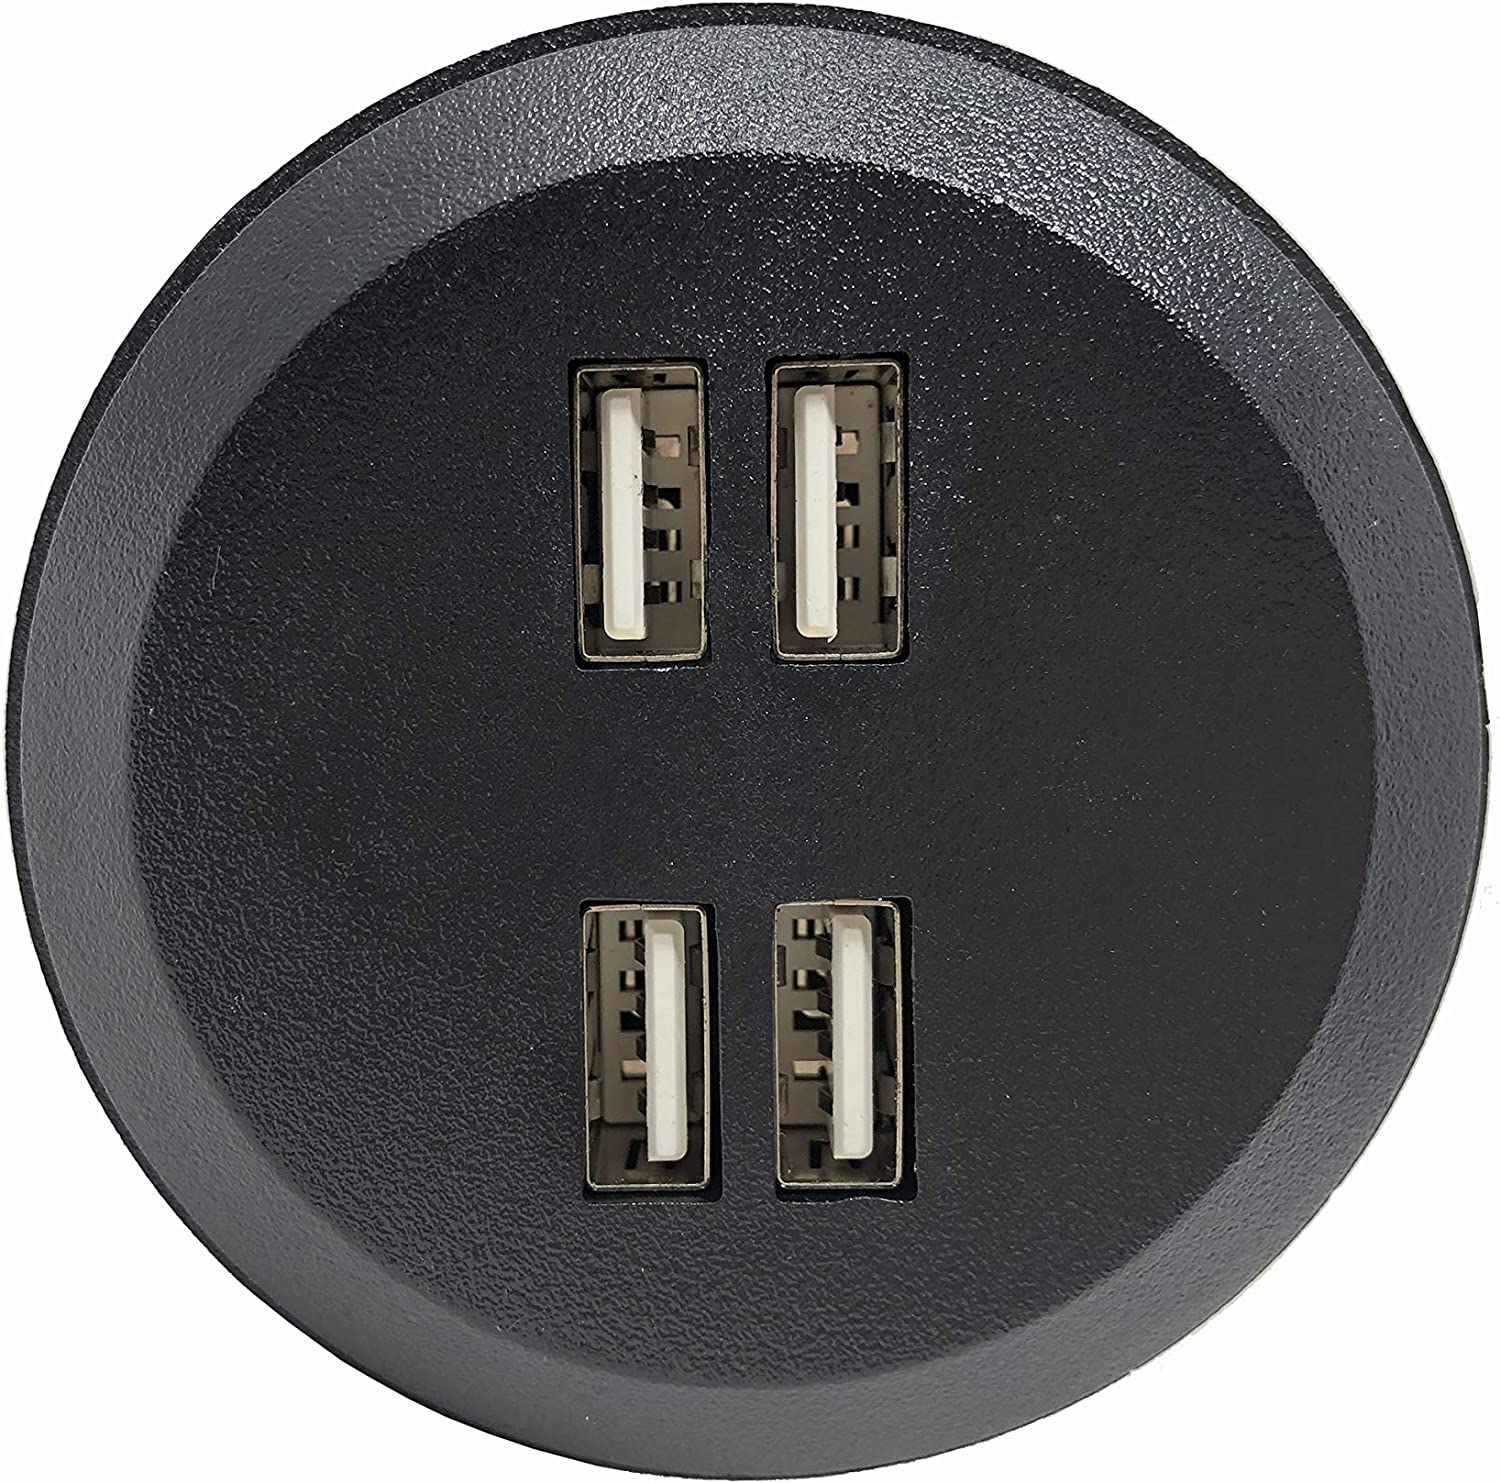 """Desktop Power Grommet Outlet Data Center, 2"""" or 2.5"""" Hole No Drilling Required, 2 Outlet W/ 2 USB Ports (FREE RETURN) (4 USB-DC8089-(2"""" - 2.5"""" HOLE-Black))"""